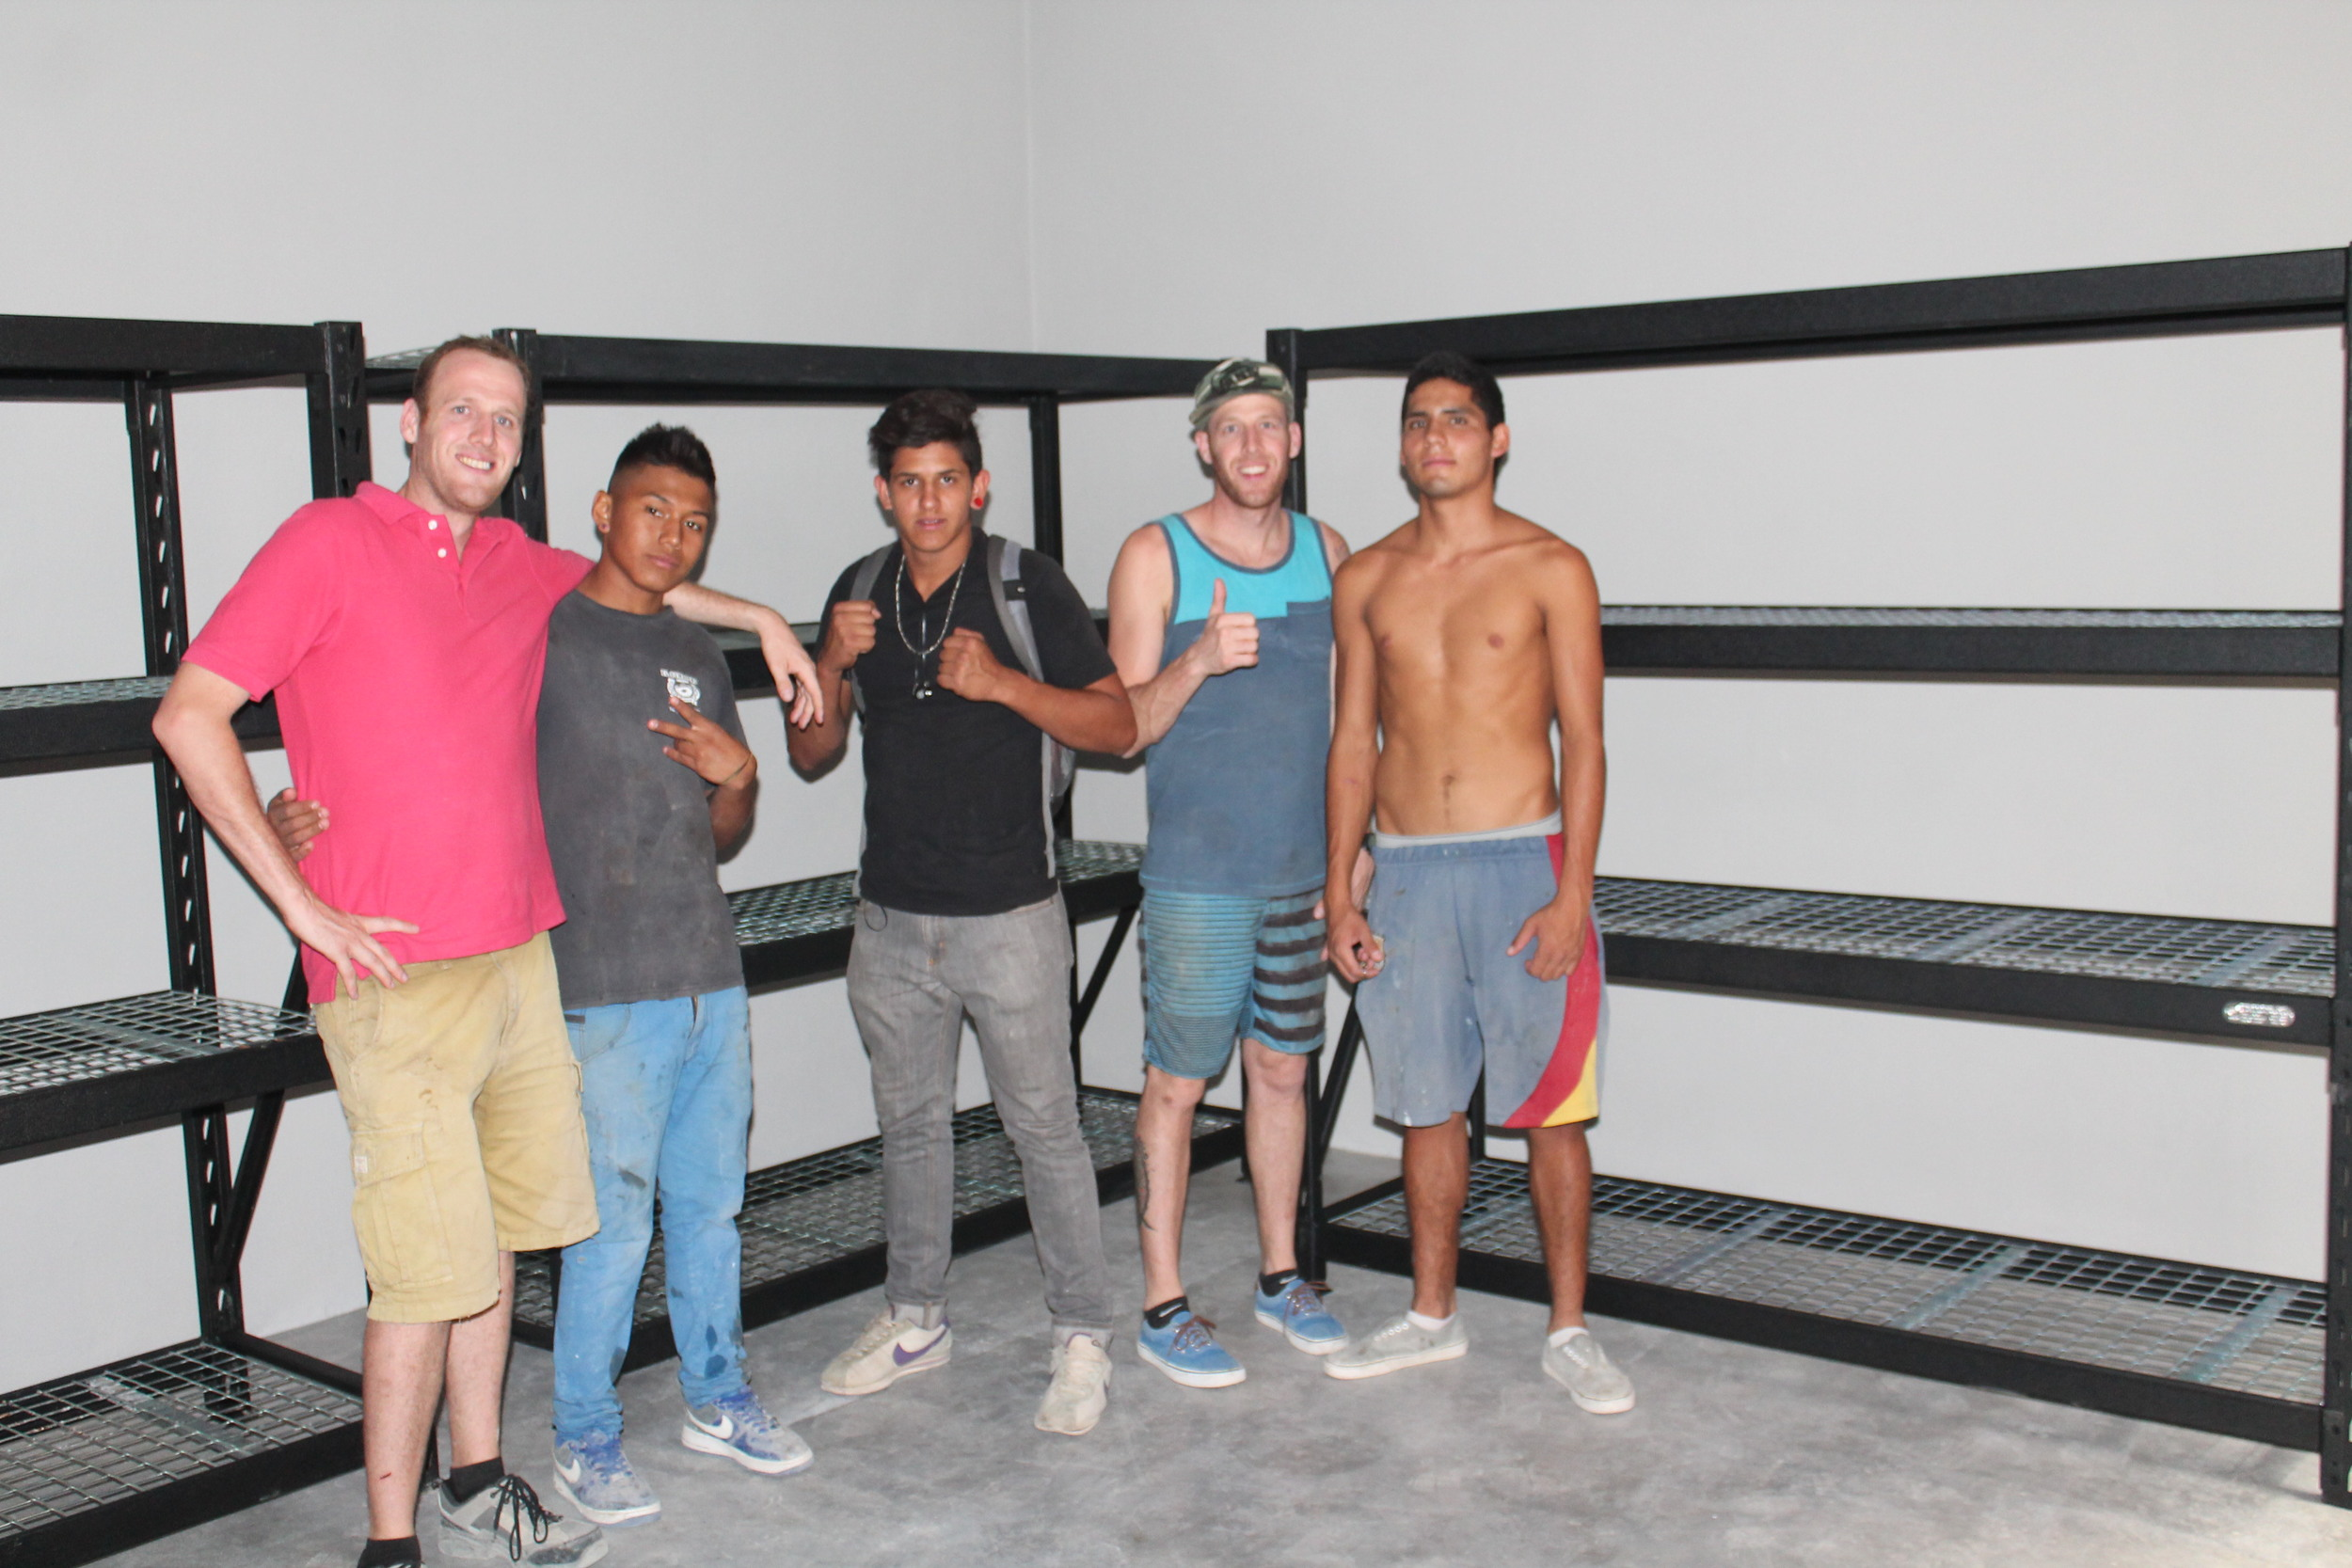 Three of our youth, Eduardo, Fernando, and Chino (from left to right), in the storage room.